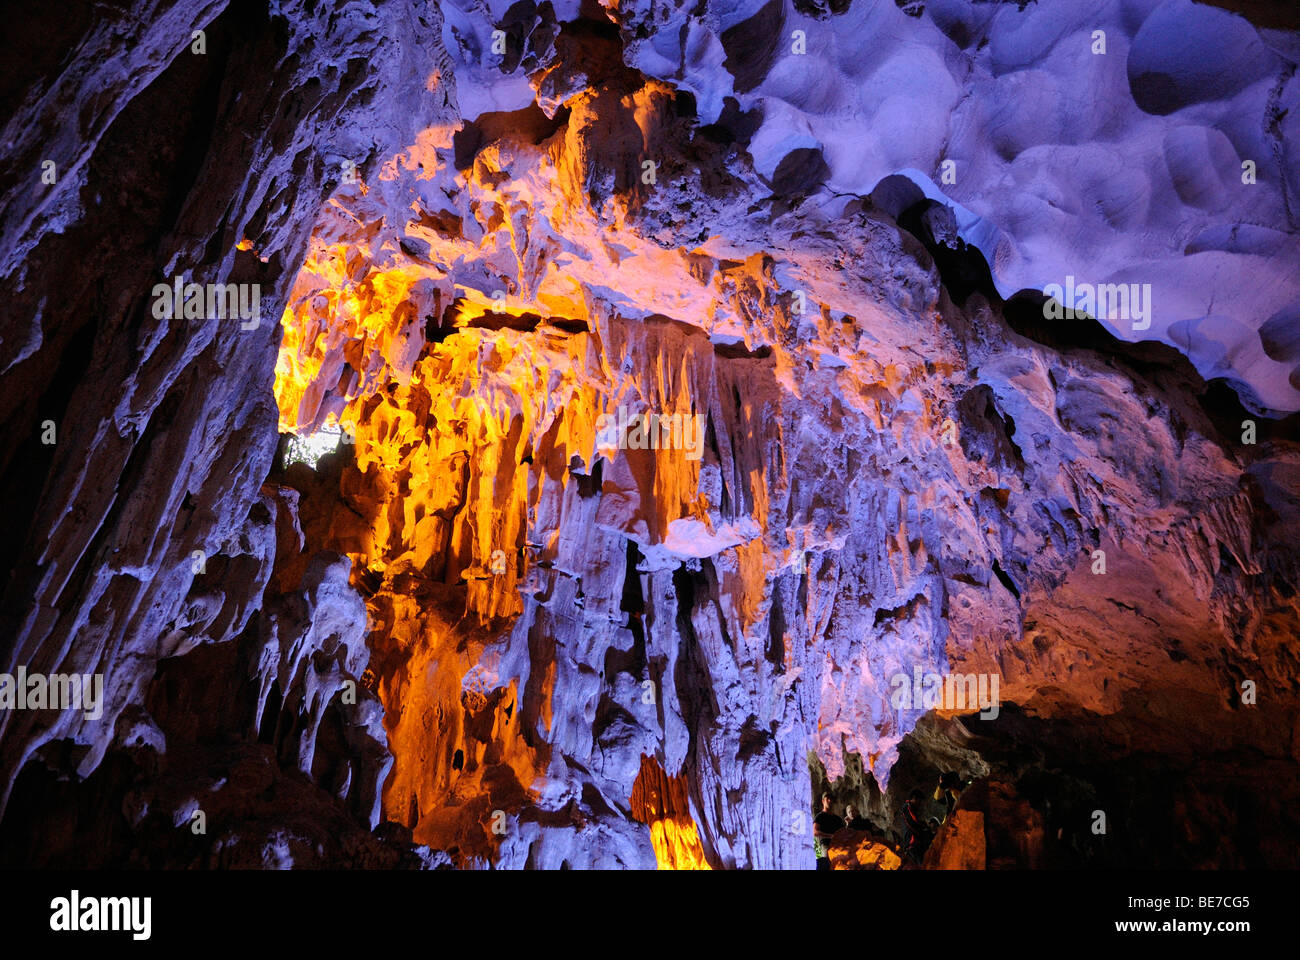 Colorful illuminated cave at Halong Bay, UNESCO World Heritage Site, Vietnam, Asia Stock Photo